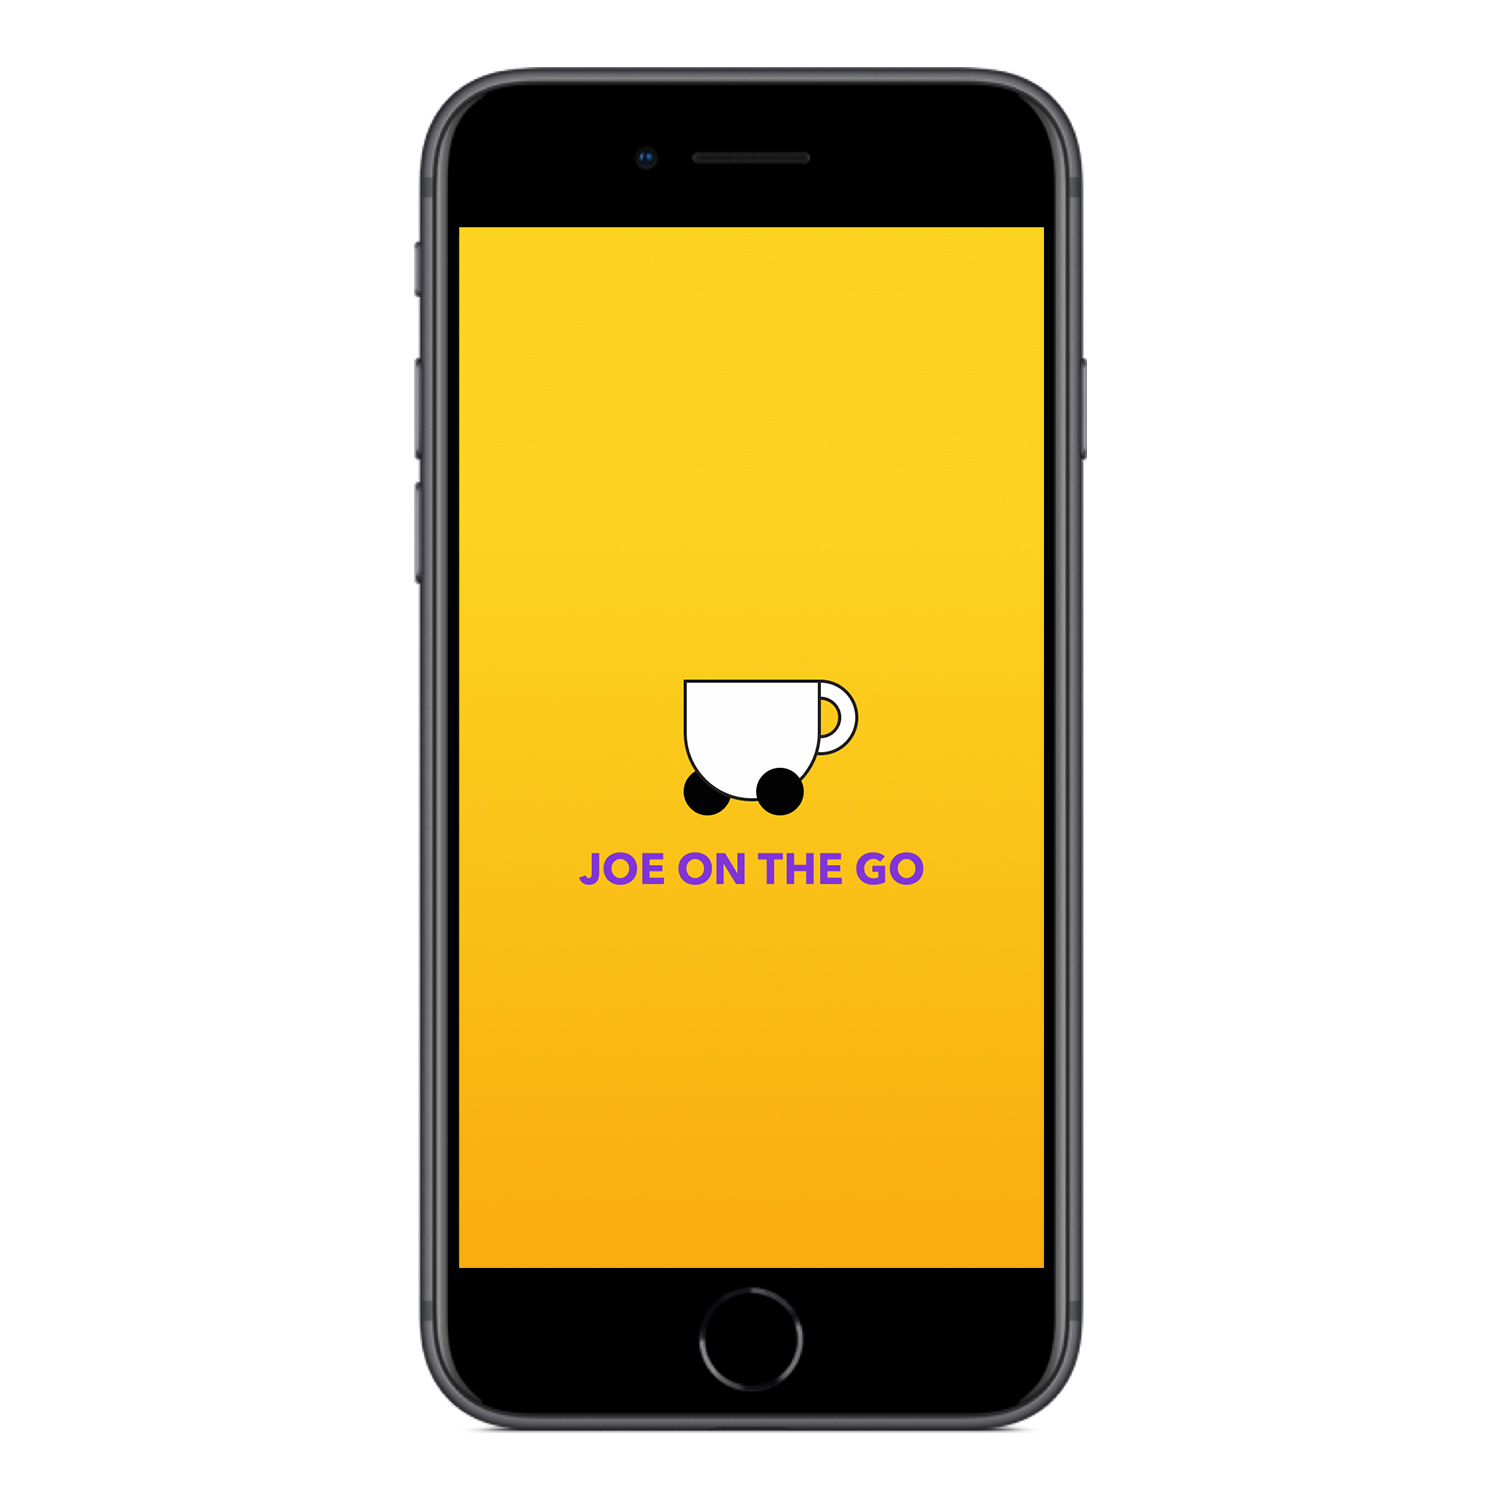 Joe on the Go App for Relish Works - UX Design - A mobile application and services that tackles off premise dinning for coffee users and shops through fast delivery and crafting the experience of a cafe. (~1 week)